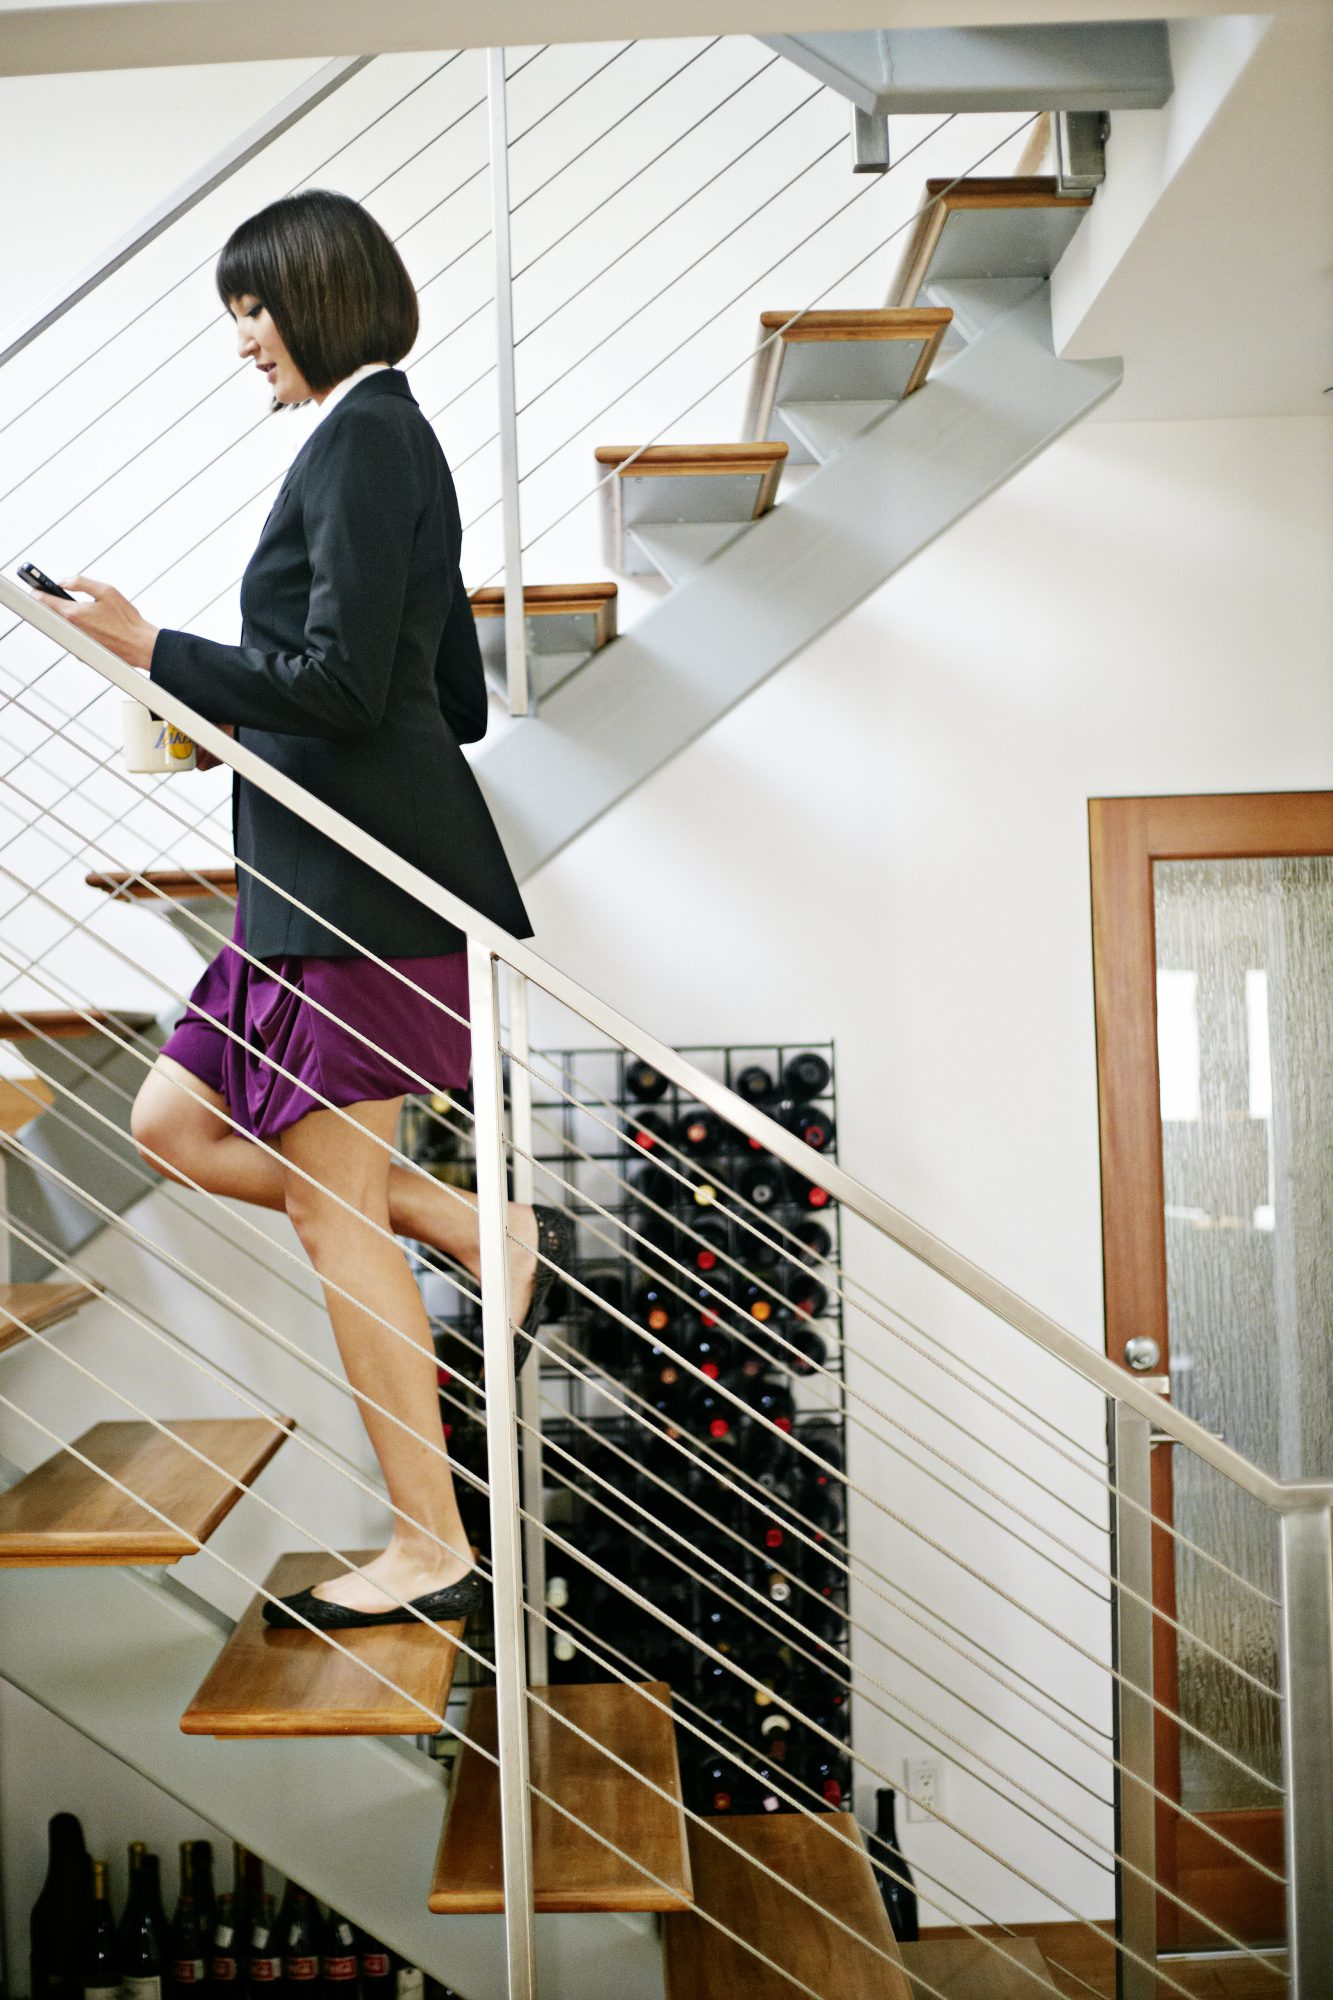 <p>Woman Climbing Stairs Texting</p>